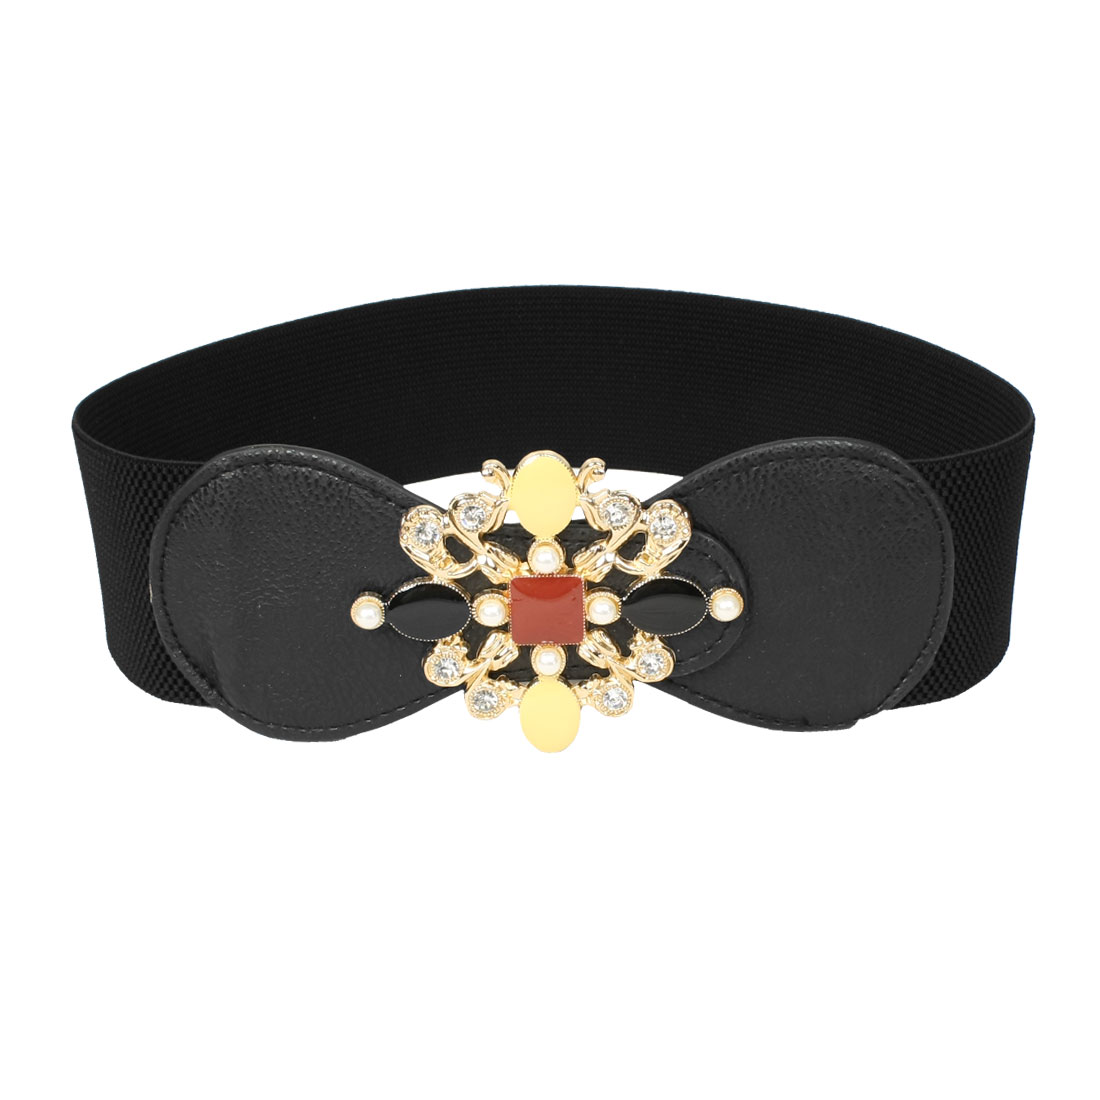 Black One Size Textured Pattern Stretchy Waistband Belt for Ladies